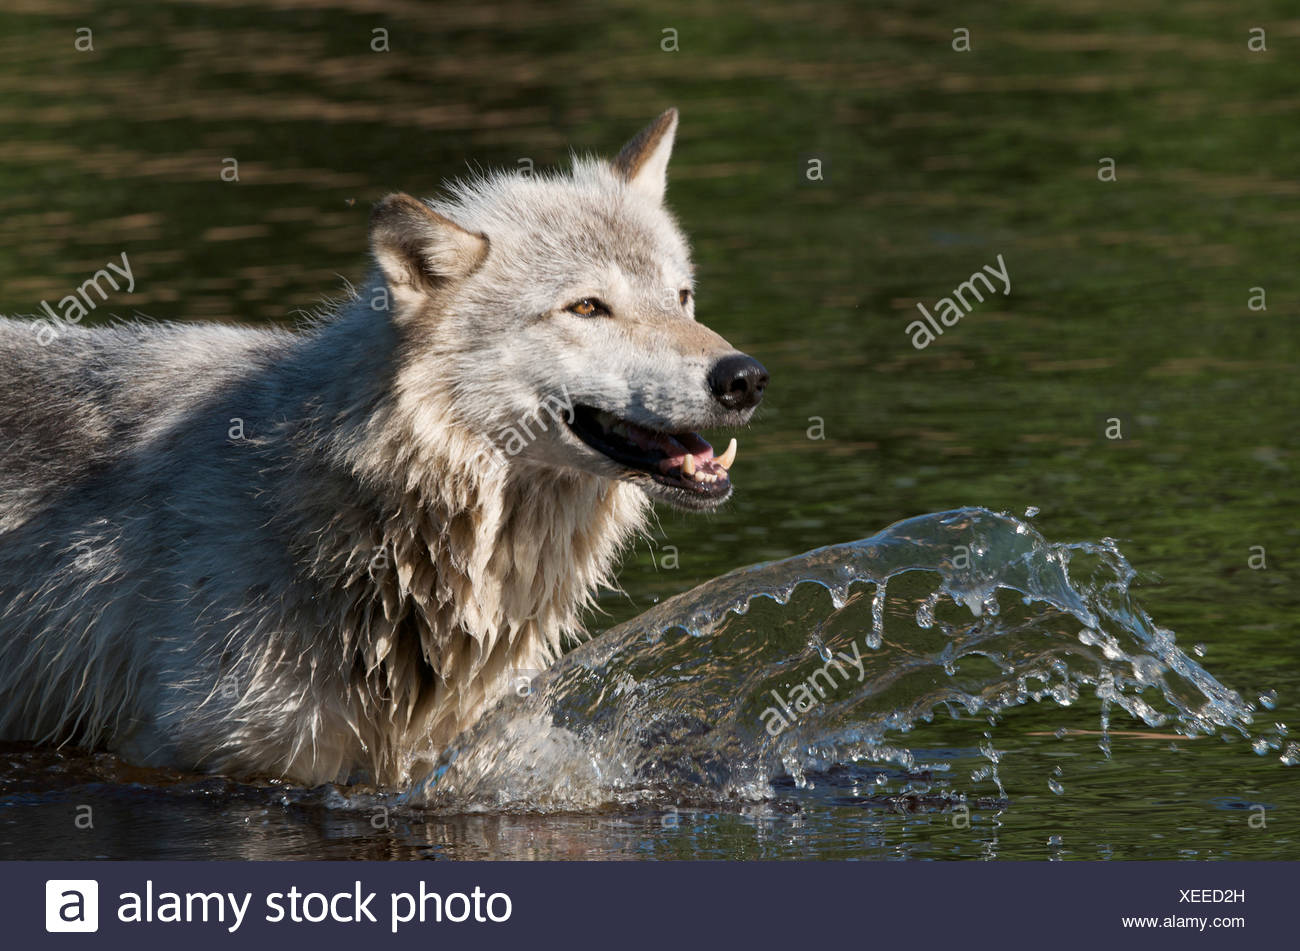 Timber Wolf (Canis lupus) in lake in Boundary Waters Canoe Area, Minnesota, USA, North America - Stock Image